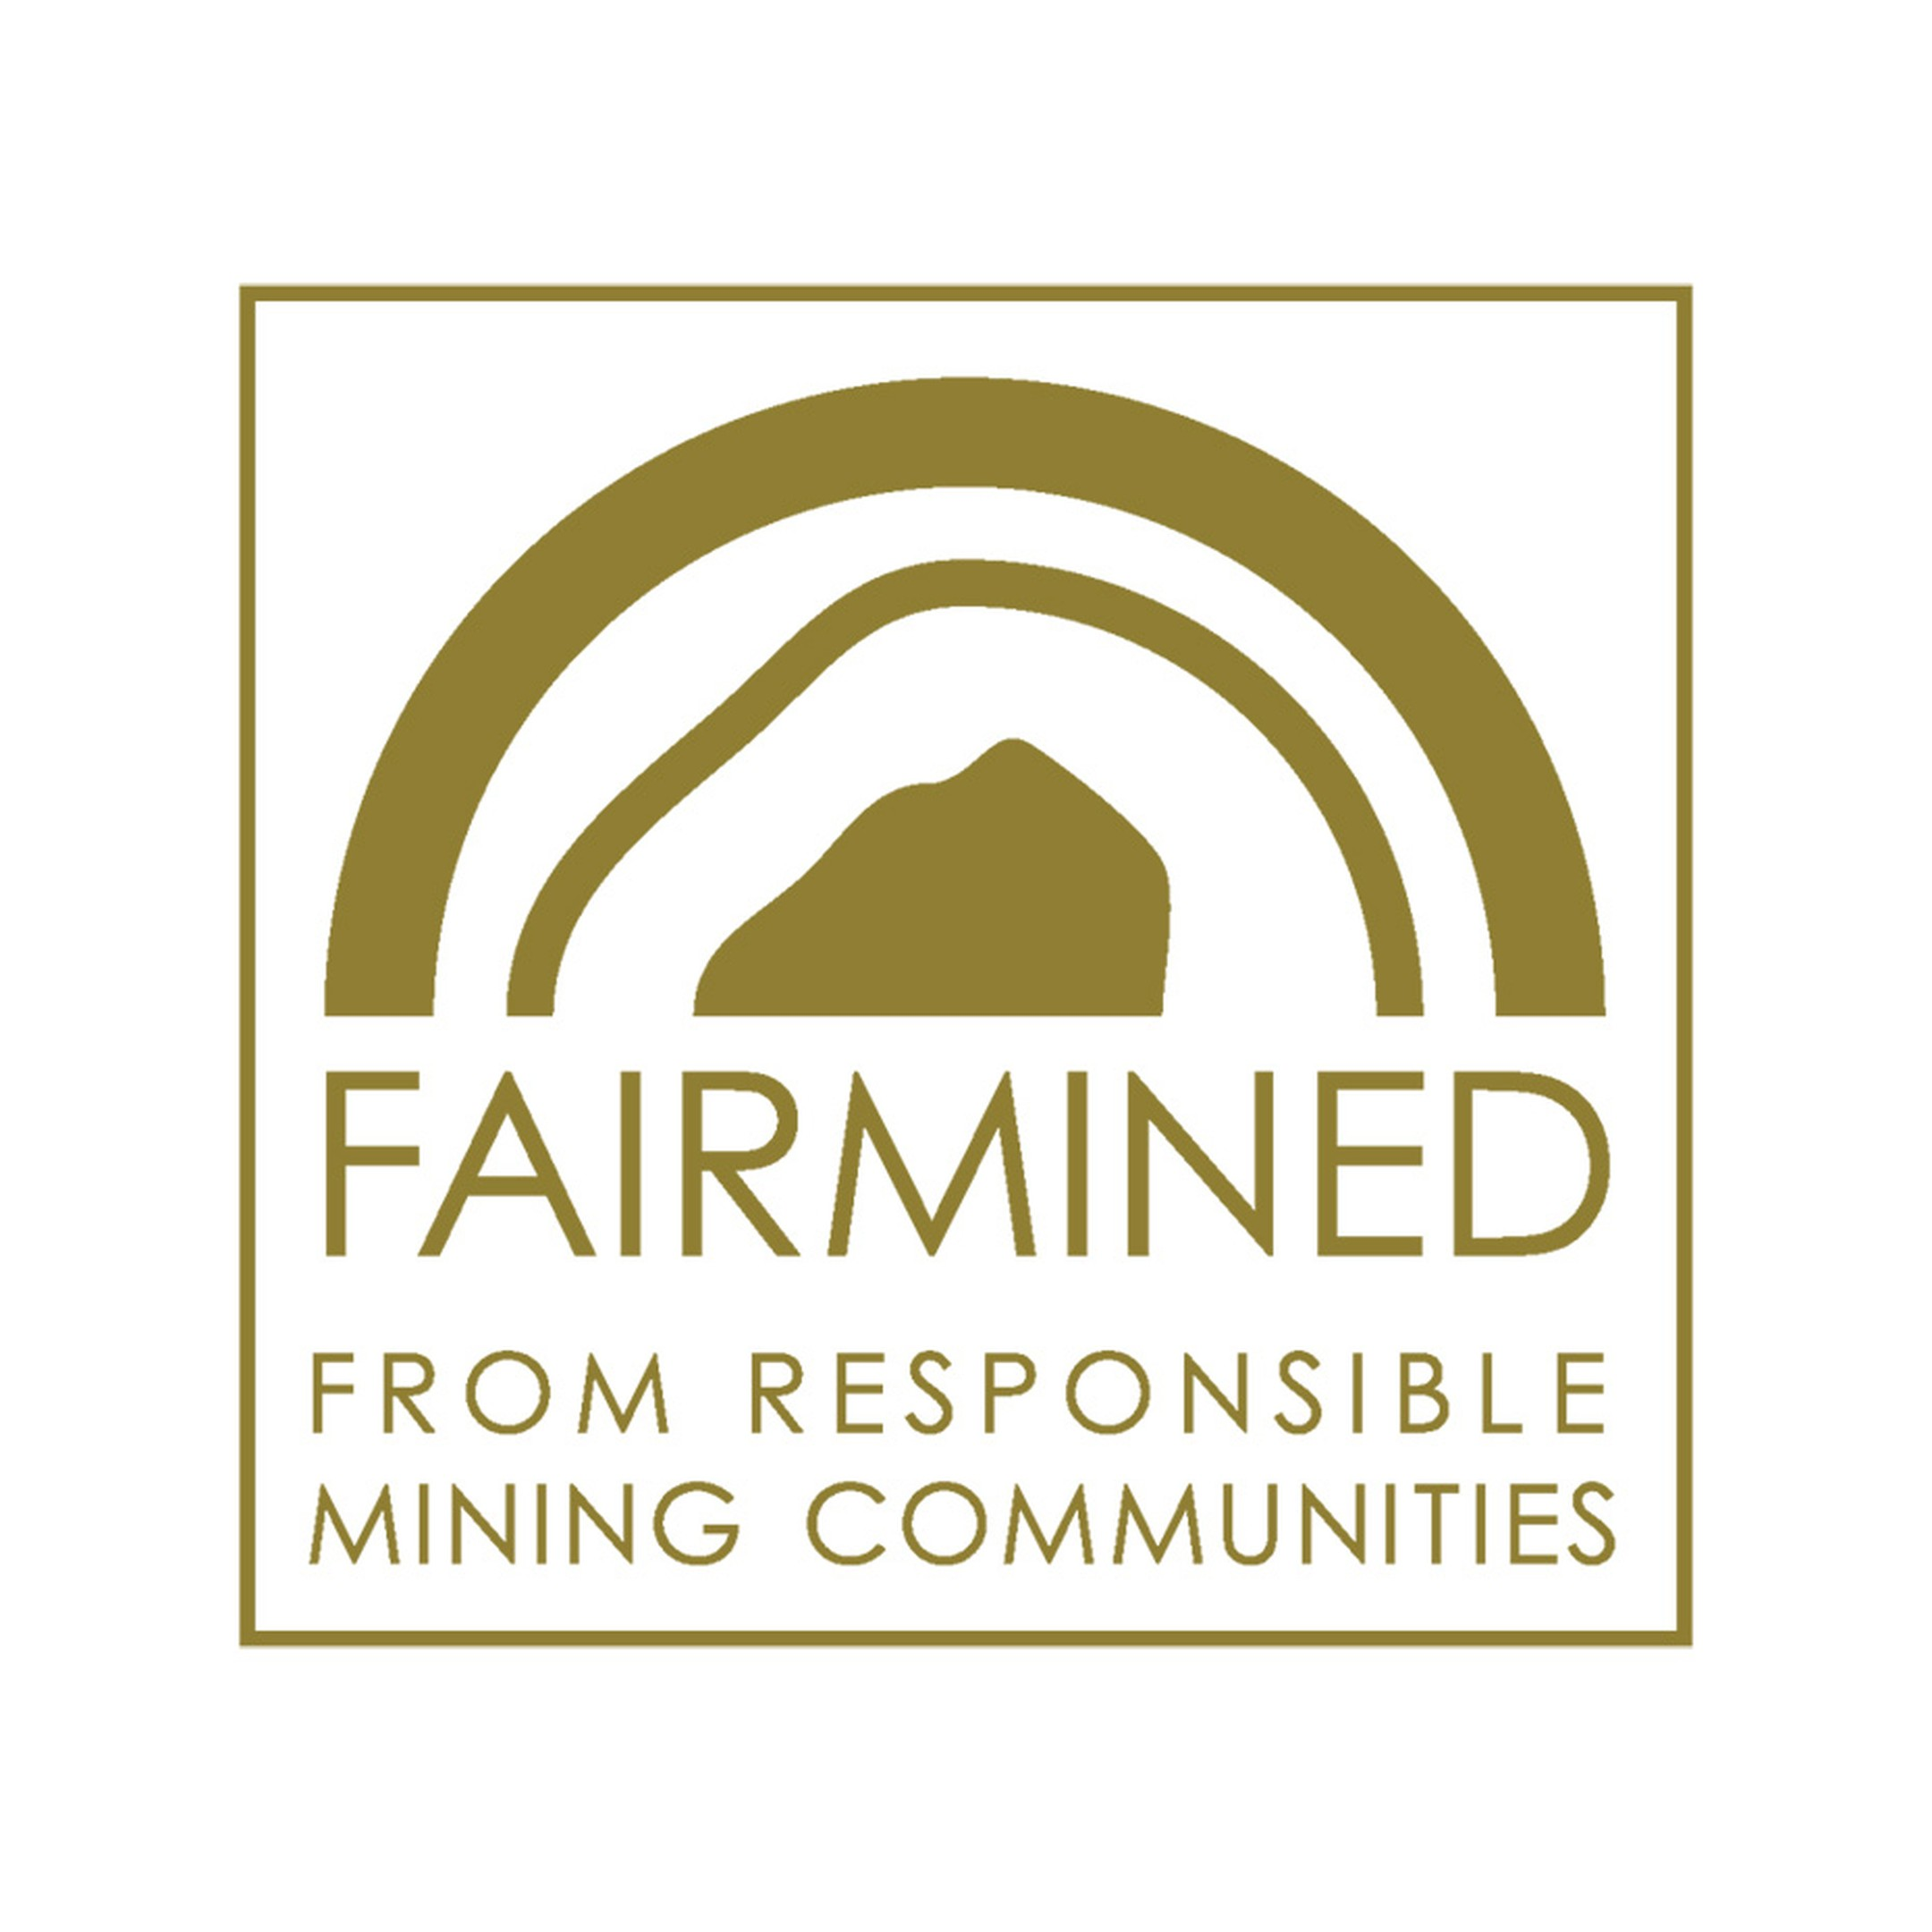 The new Fairmined logo sends a direct message about its core values, celebrating a new horizon in mining by focussing on the positive changes that take place in certified mining communities.